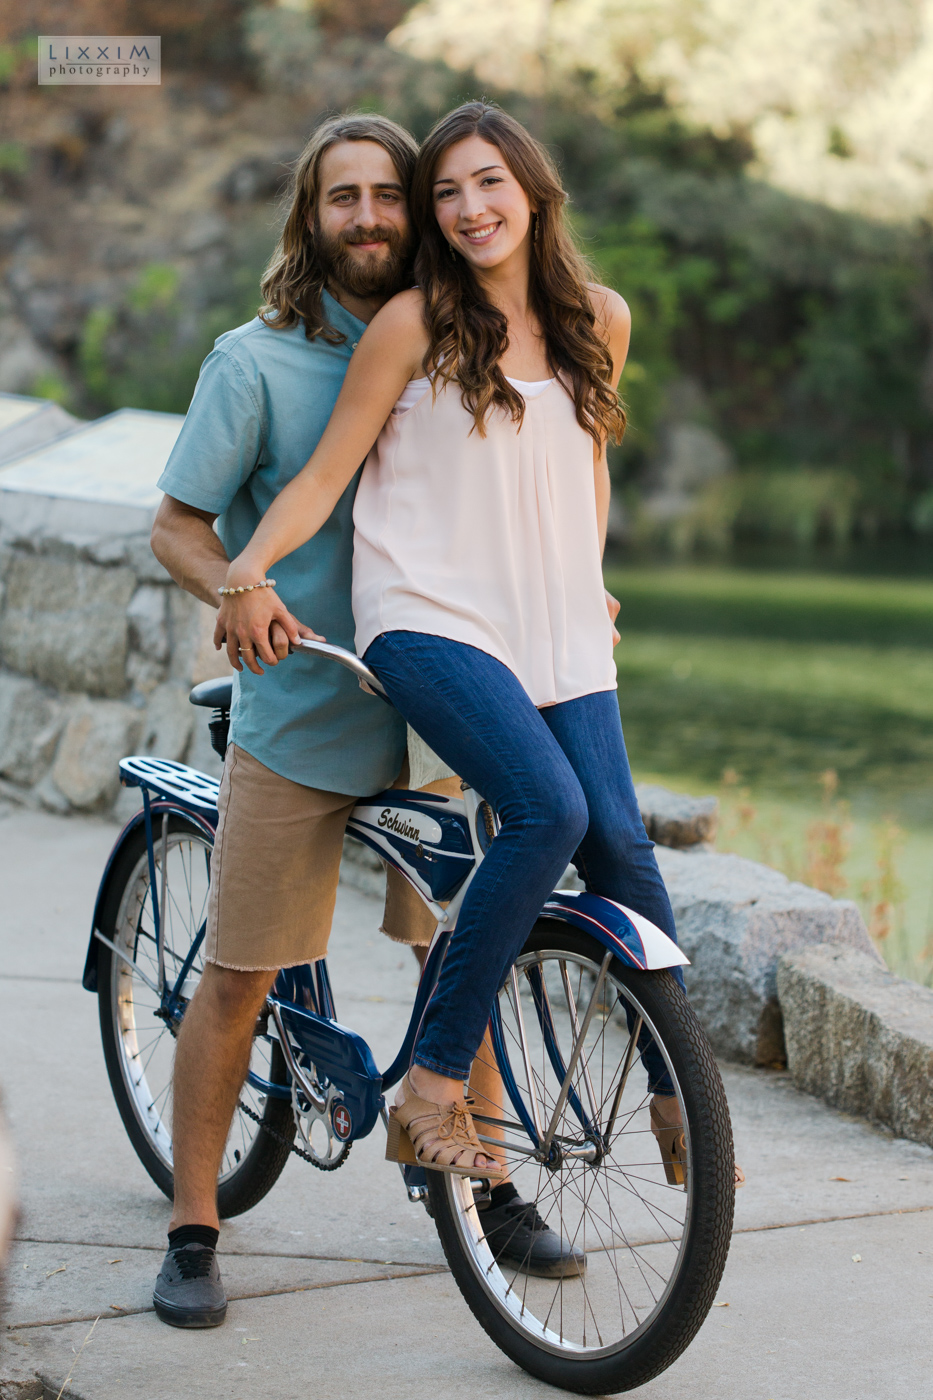 folsom-california-engagement-session-photography-5.jpg